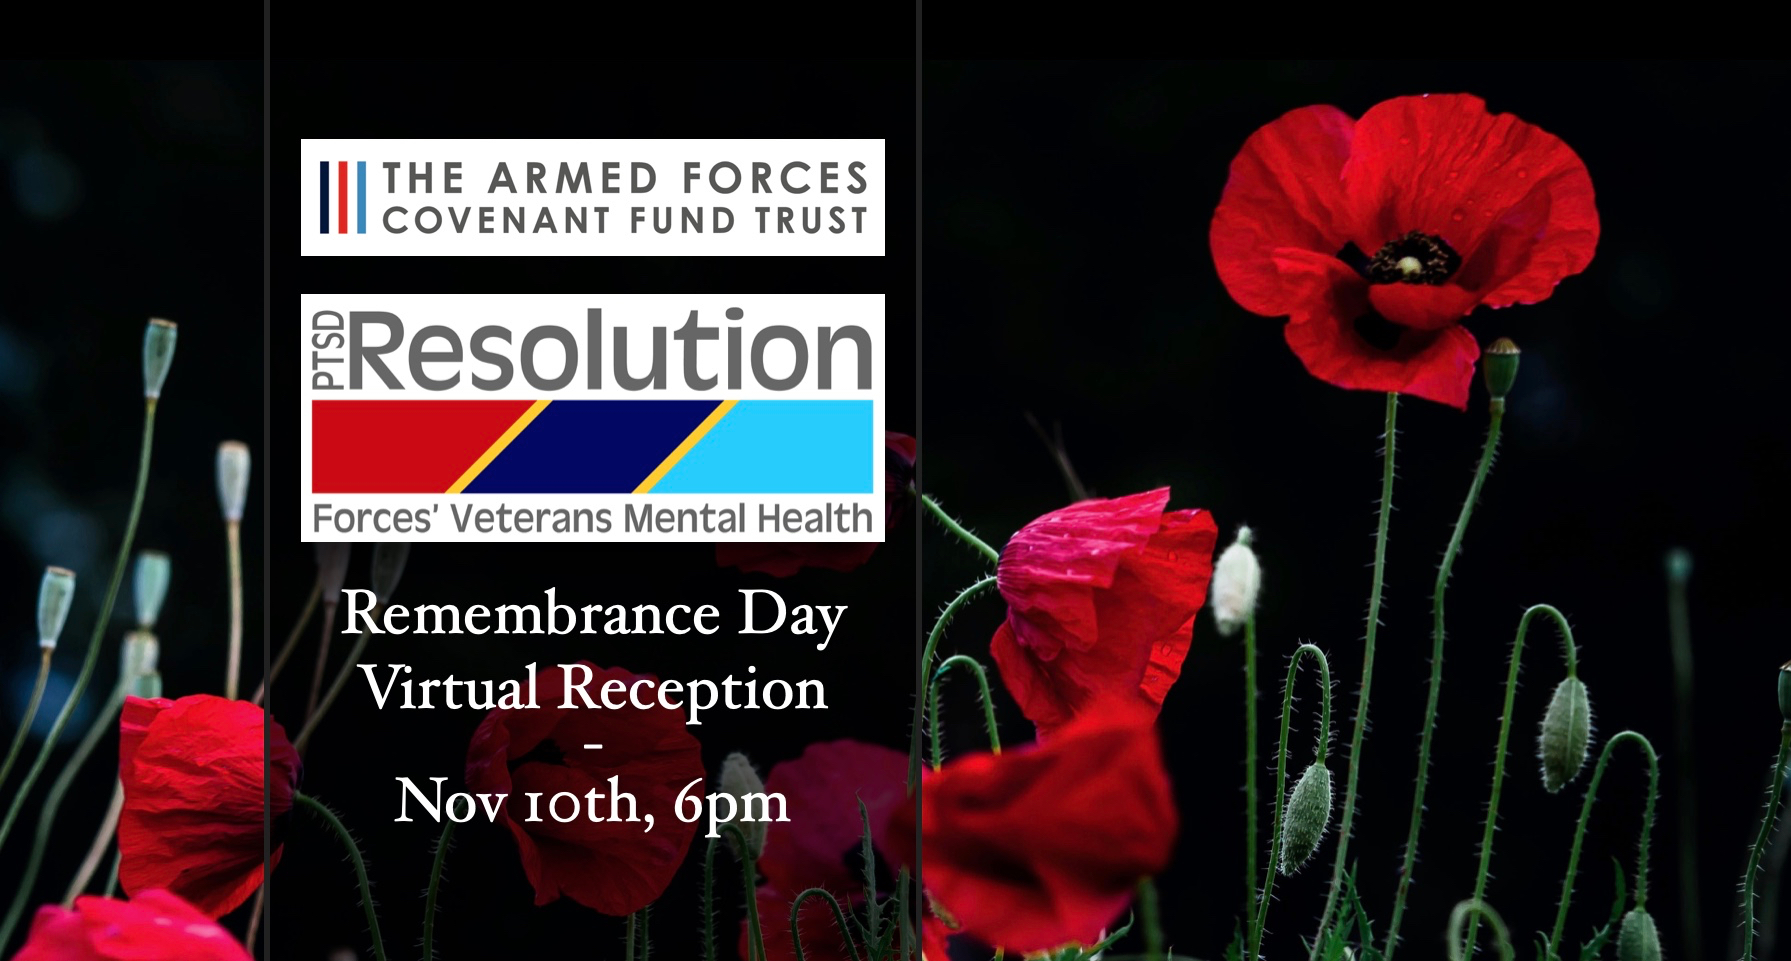 Remembrance Day Virtual Reception